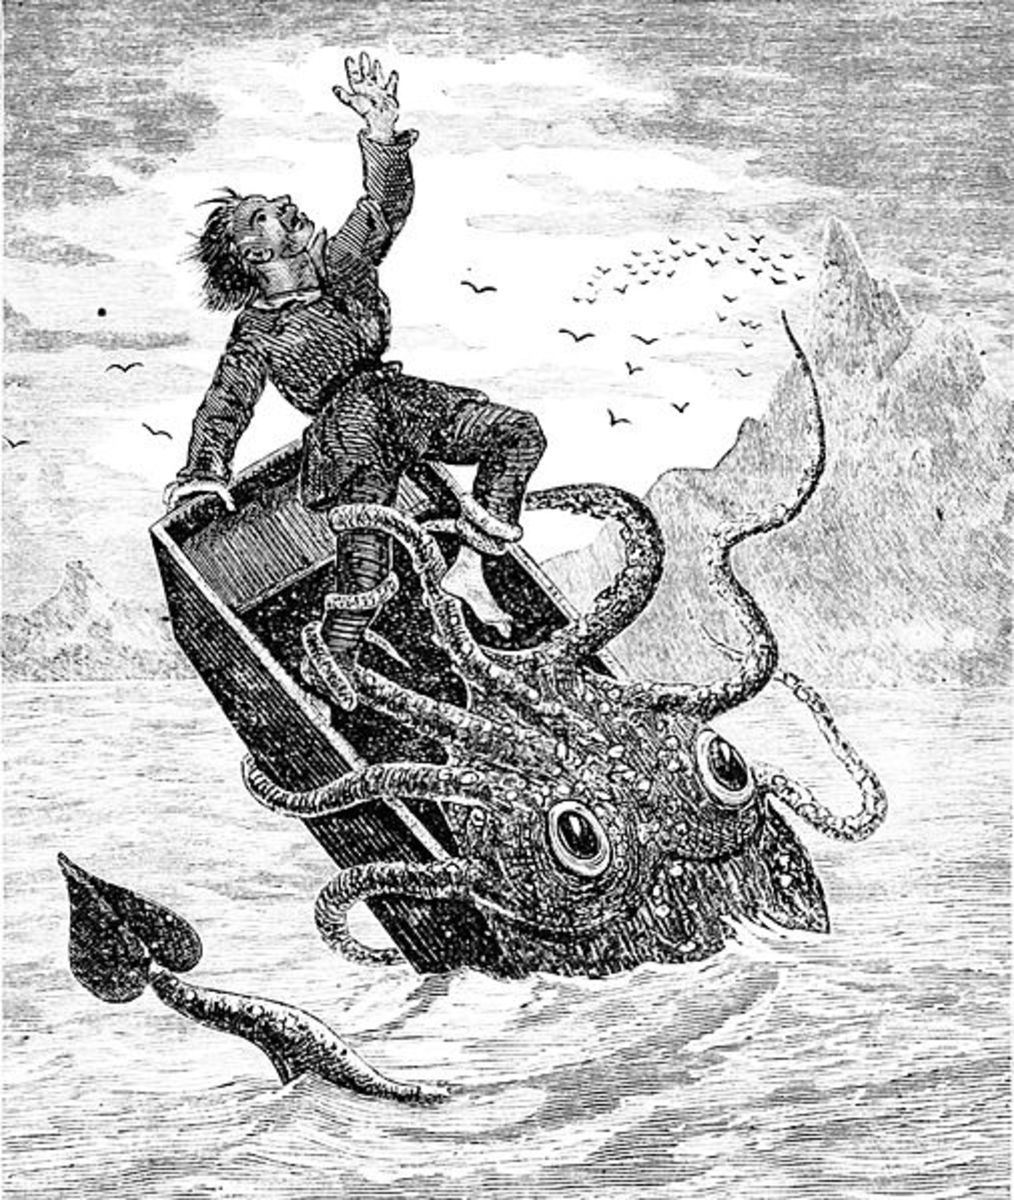 Ocean goers once feared strange sea monsters lurking the depths. Were they right to be wary?